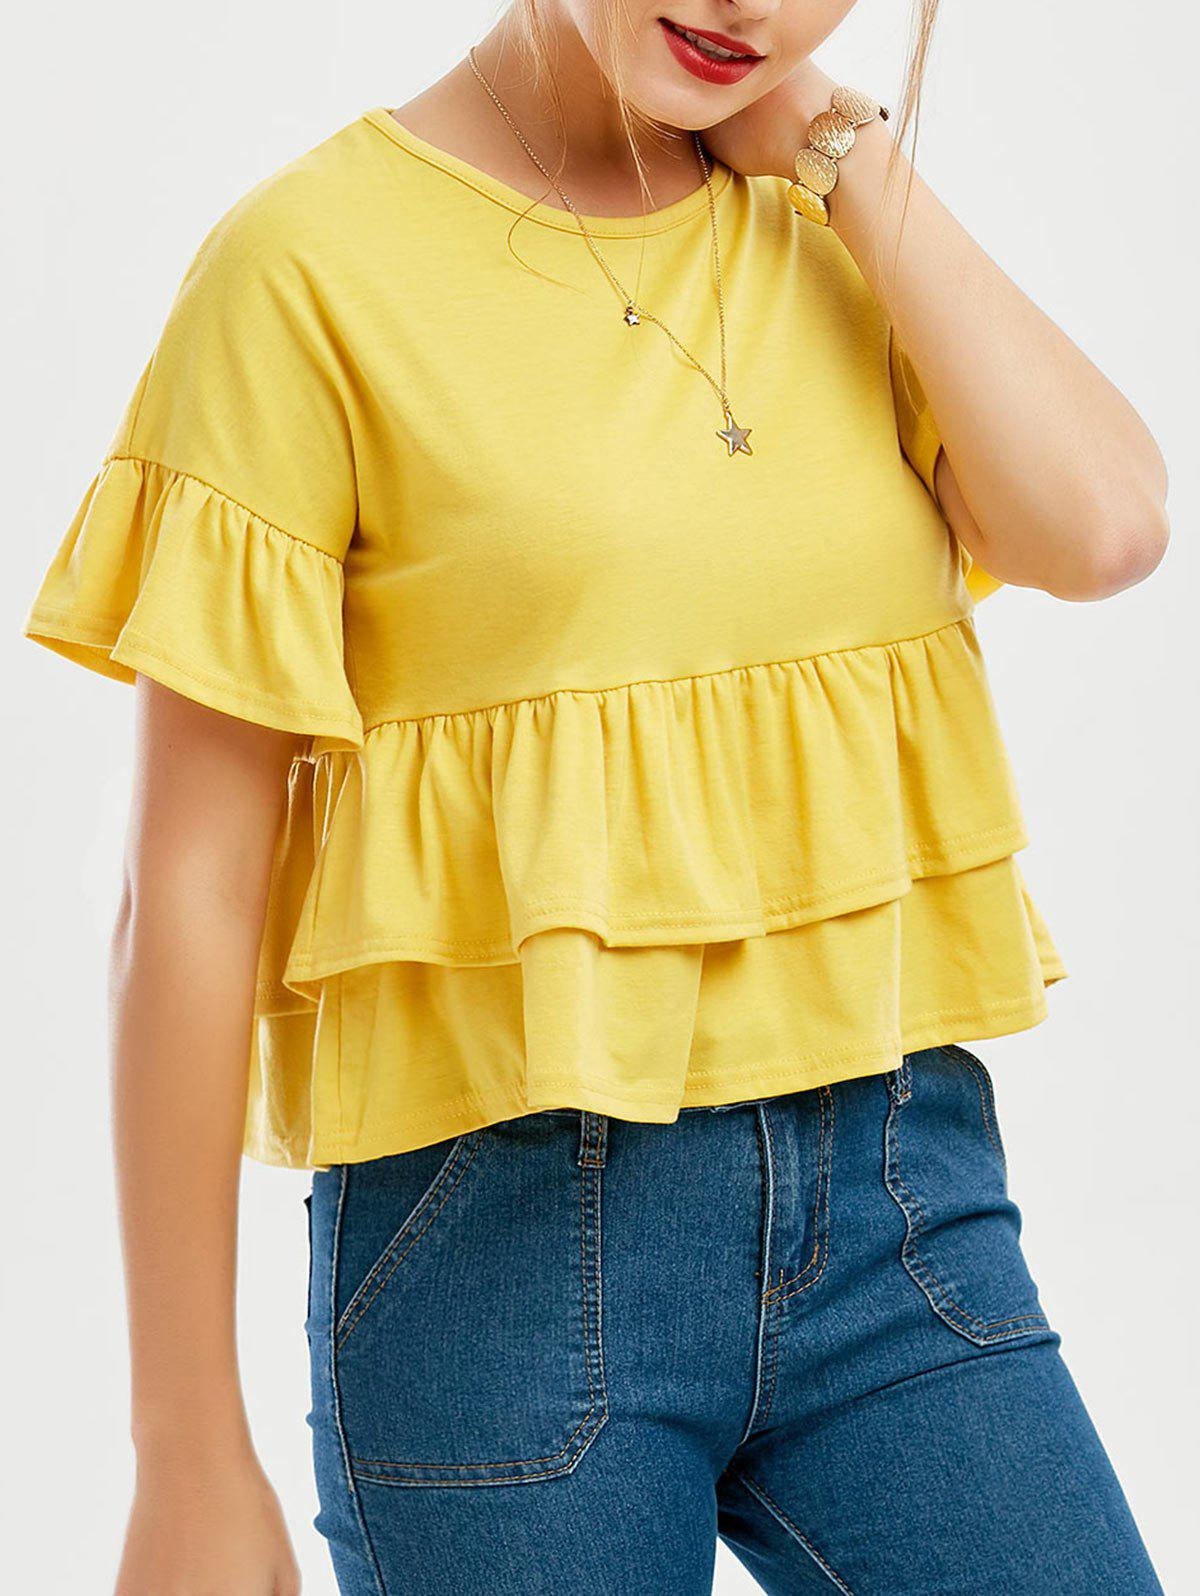 Layered Flounce Flare Sleeve Top - YELLOW S